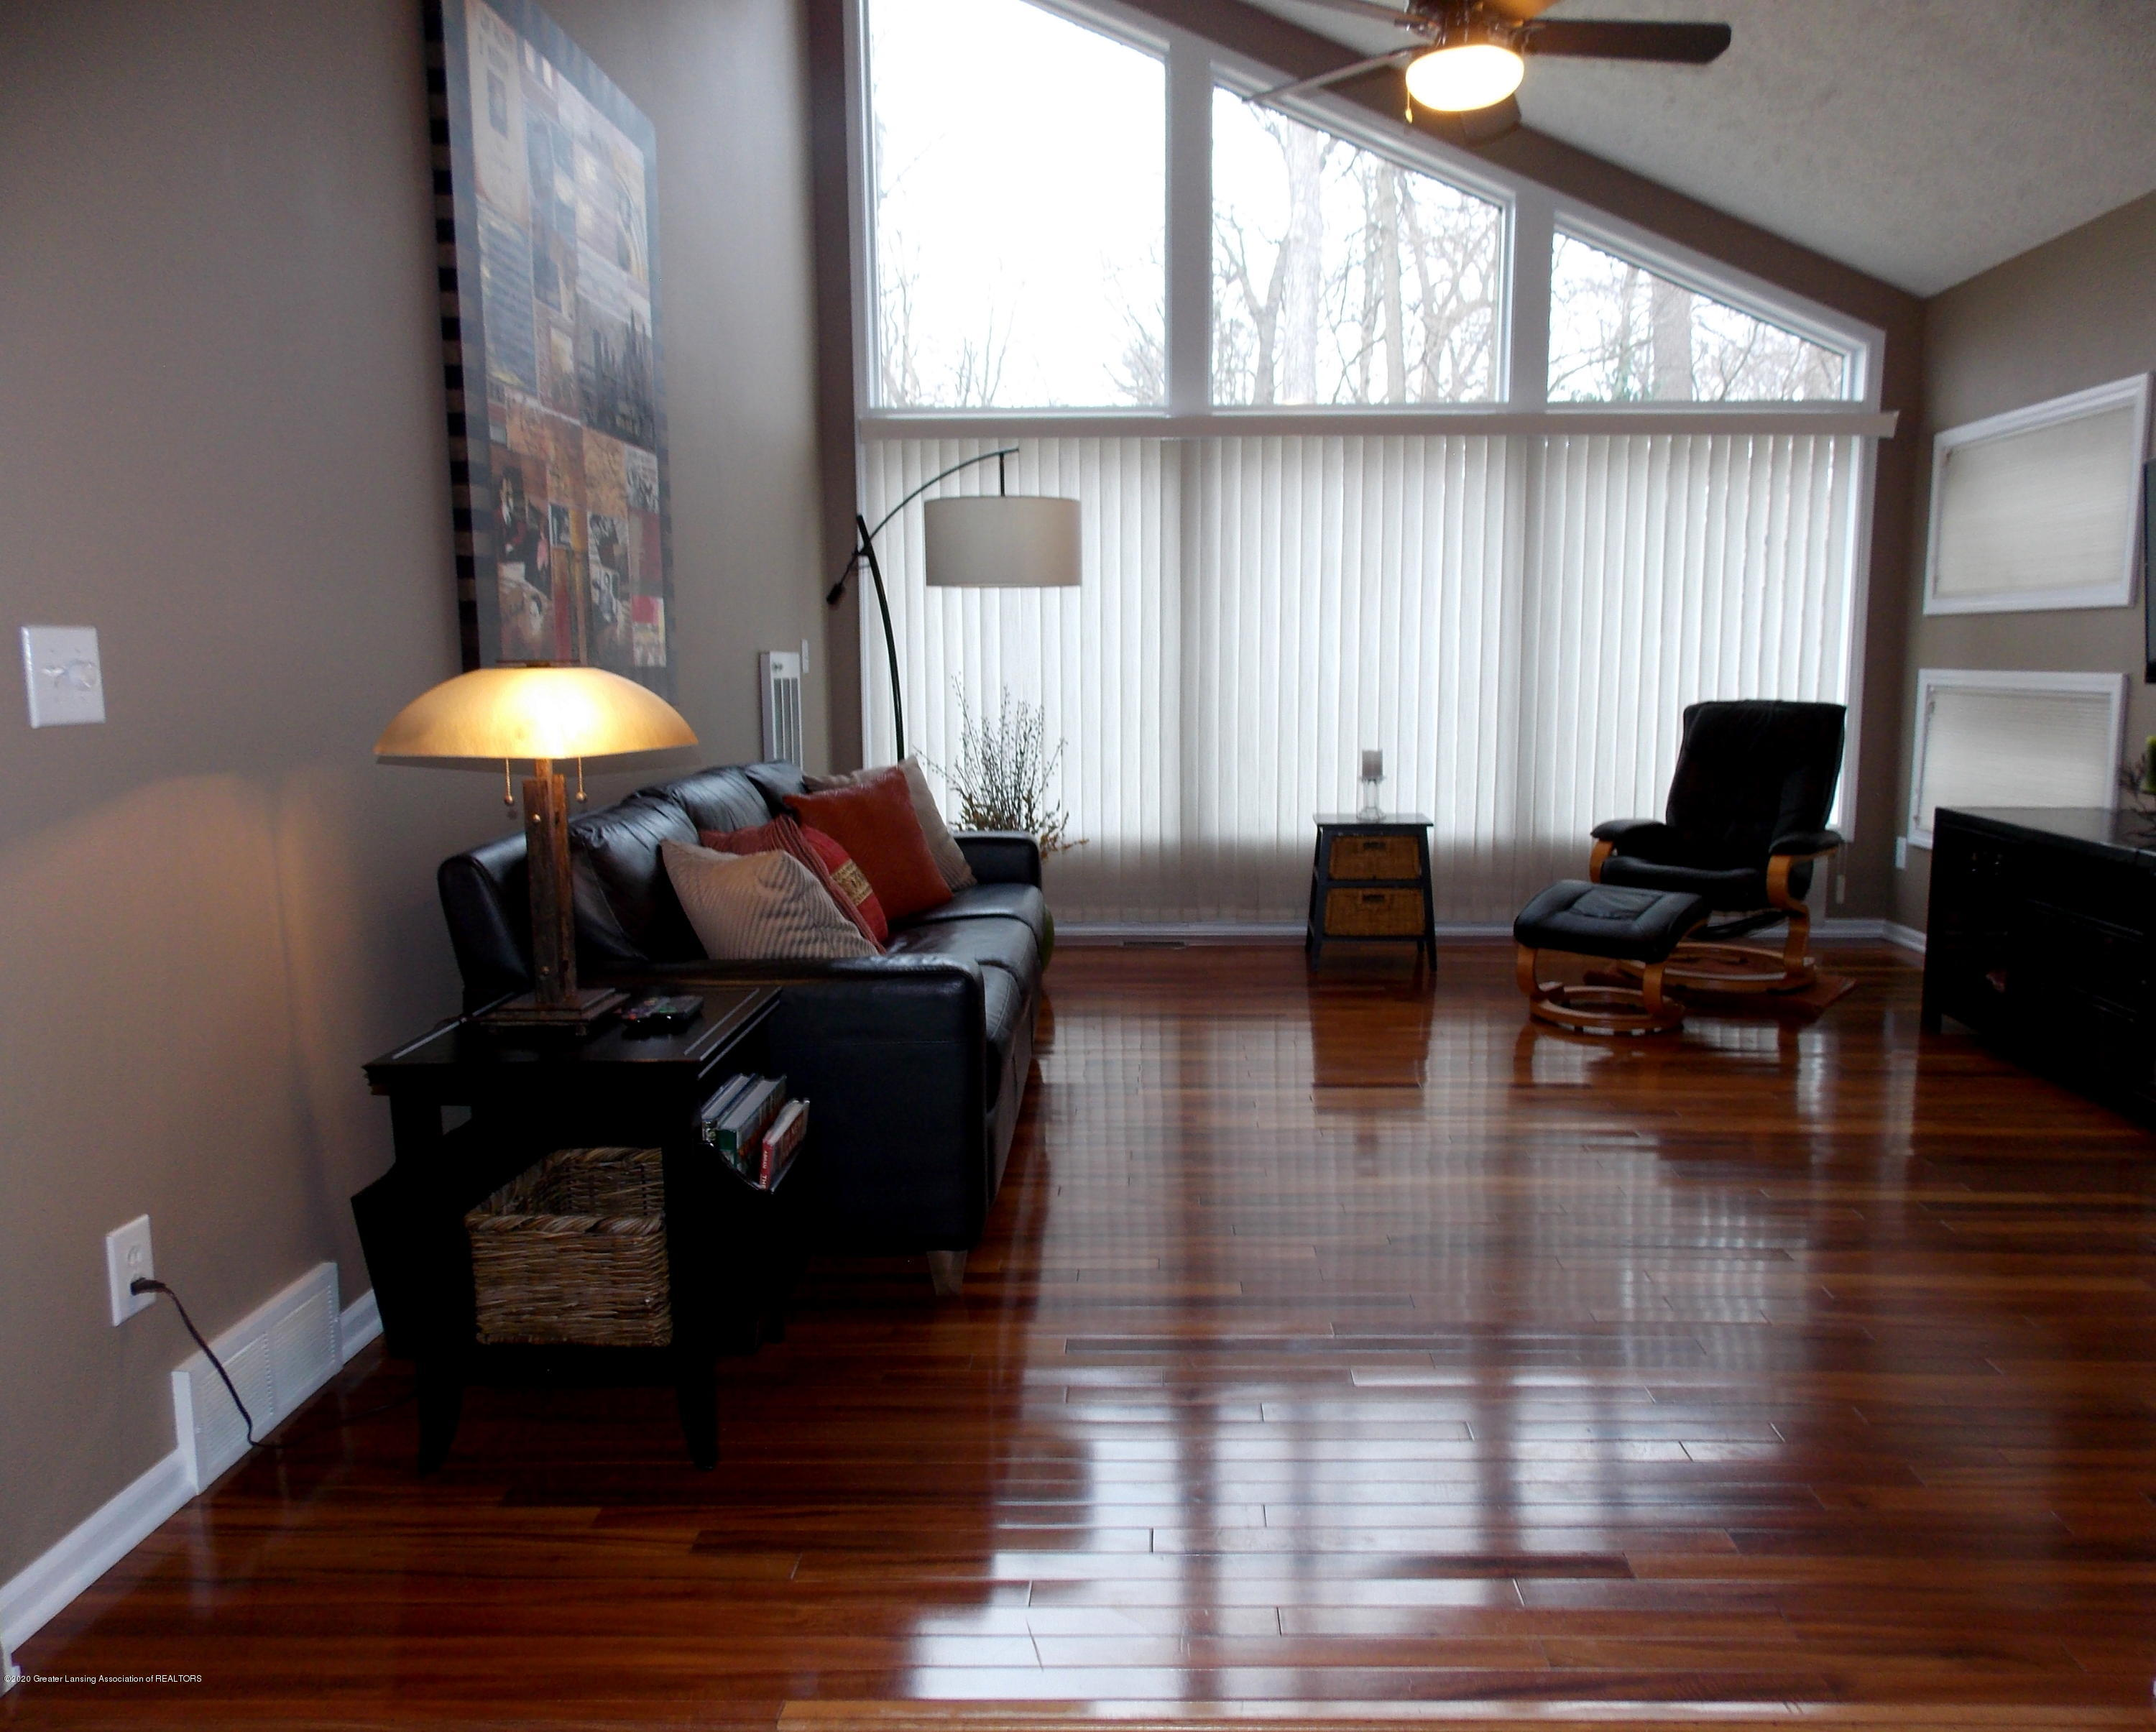 4382 Oakwood Dr - DSCN5816 - 12